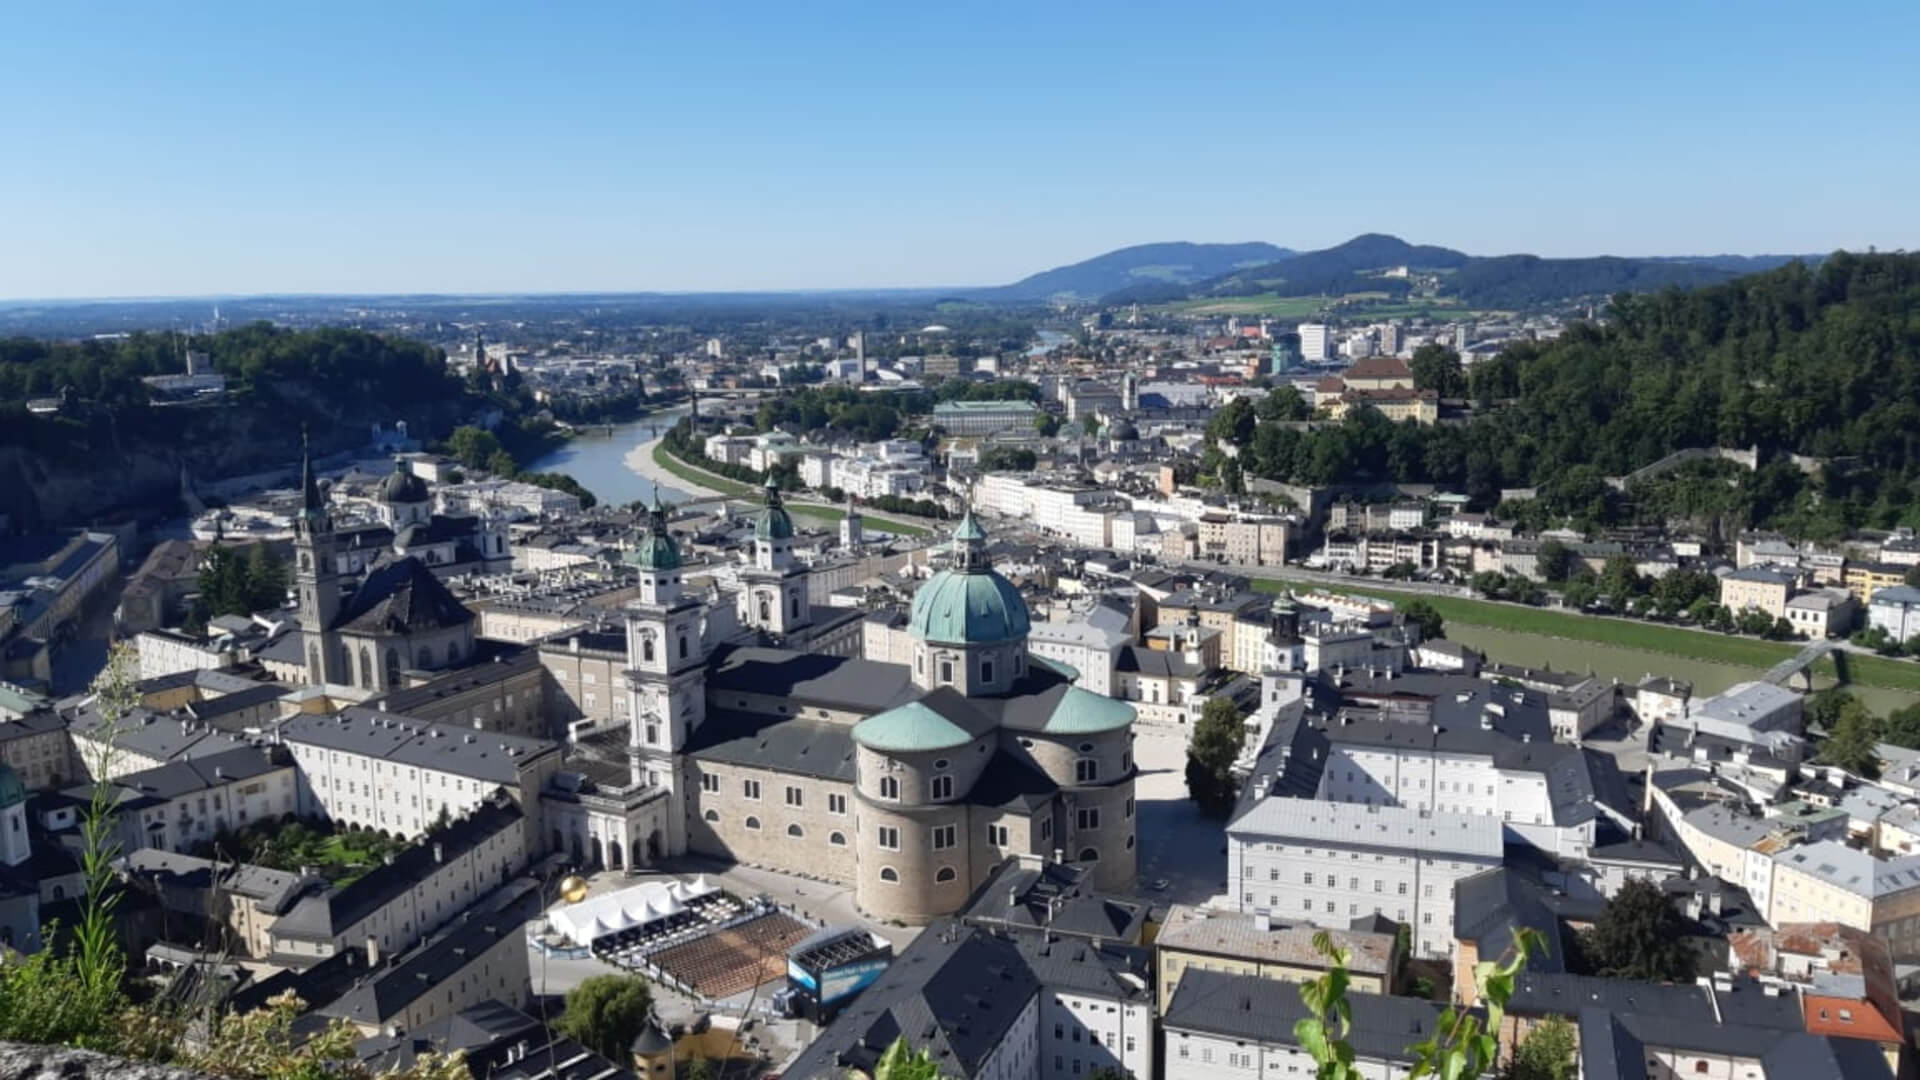 A view of Salzburg from the Fortress Hohensalzburg, where the Salzburg International Summer Academy is located | STIRworld